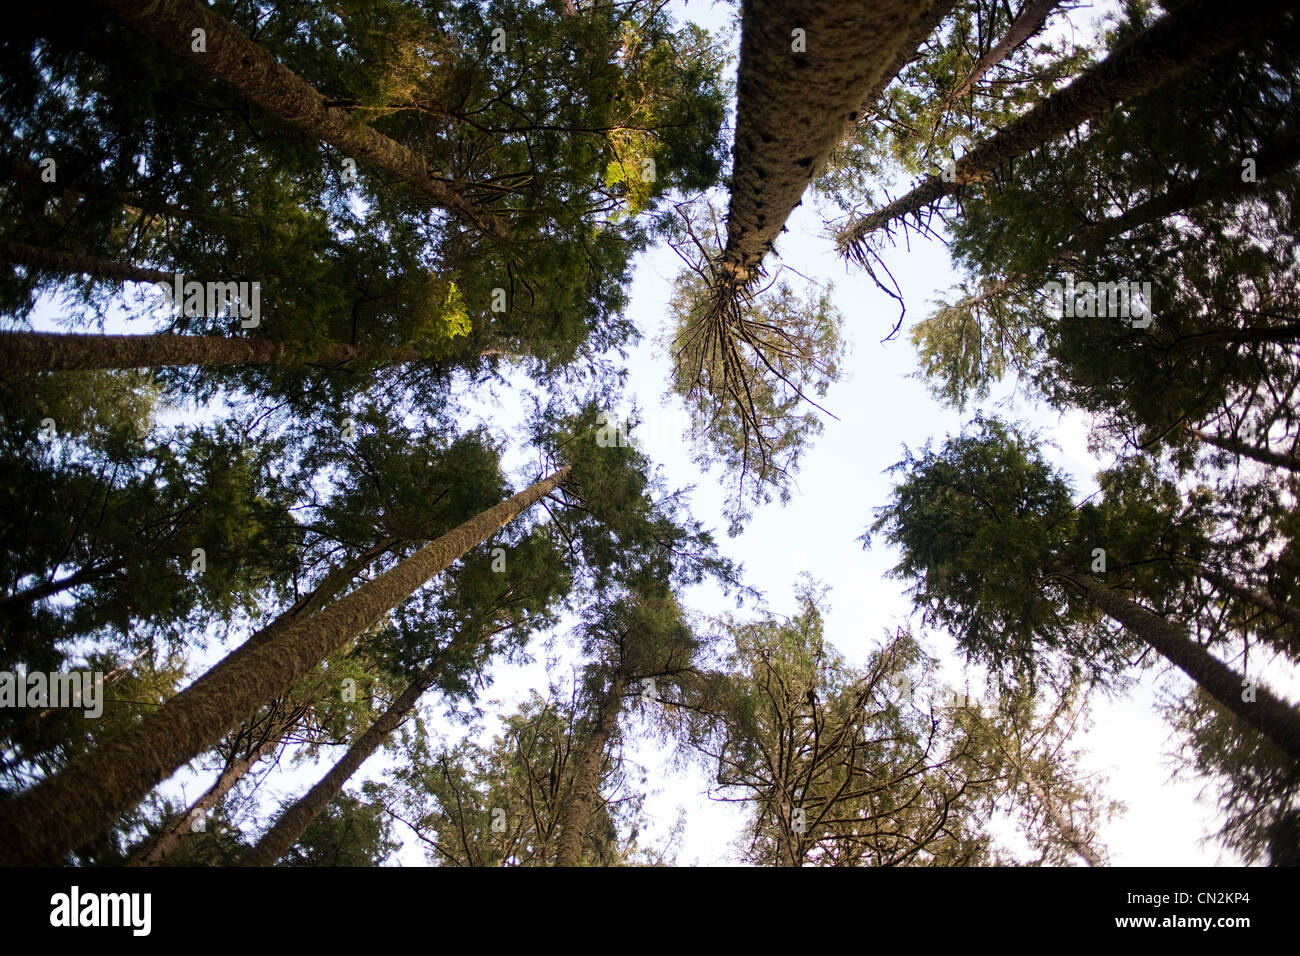 Arbres, low angle view Photo Stock